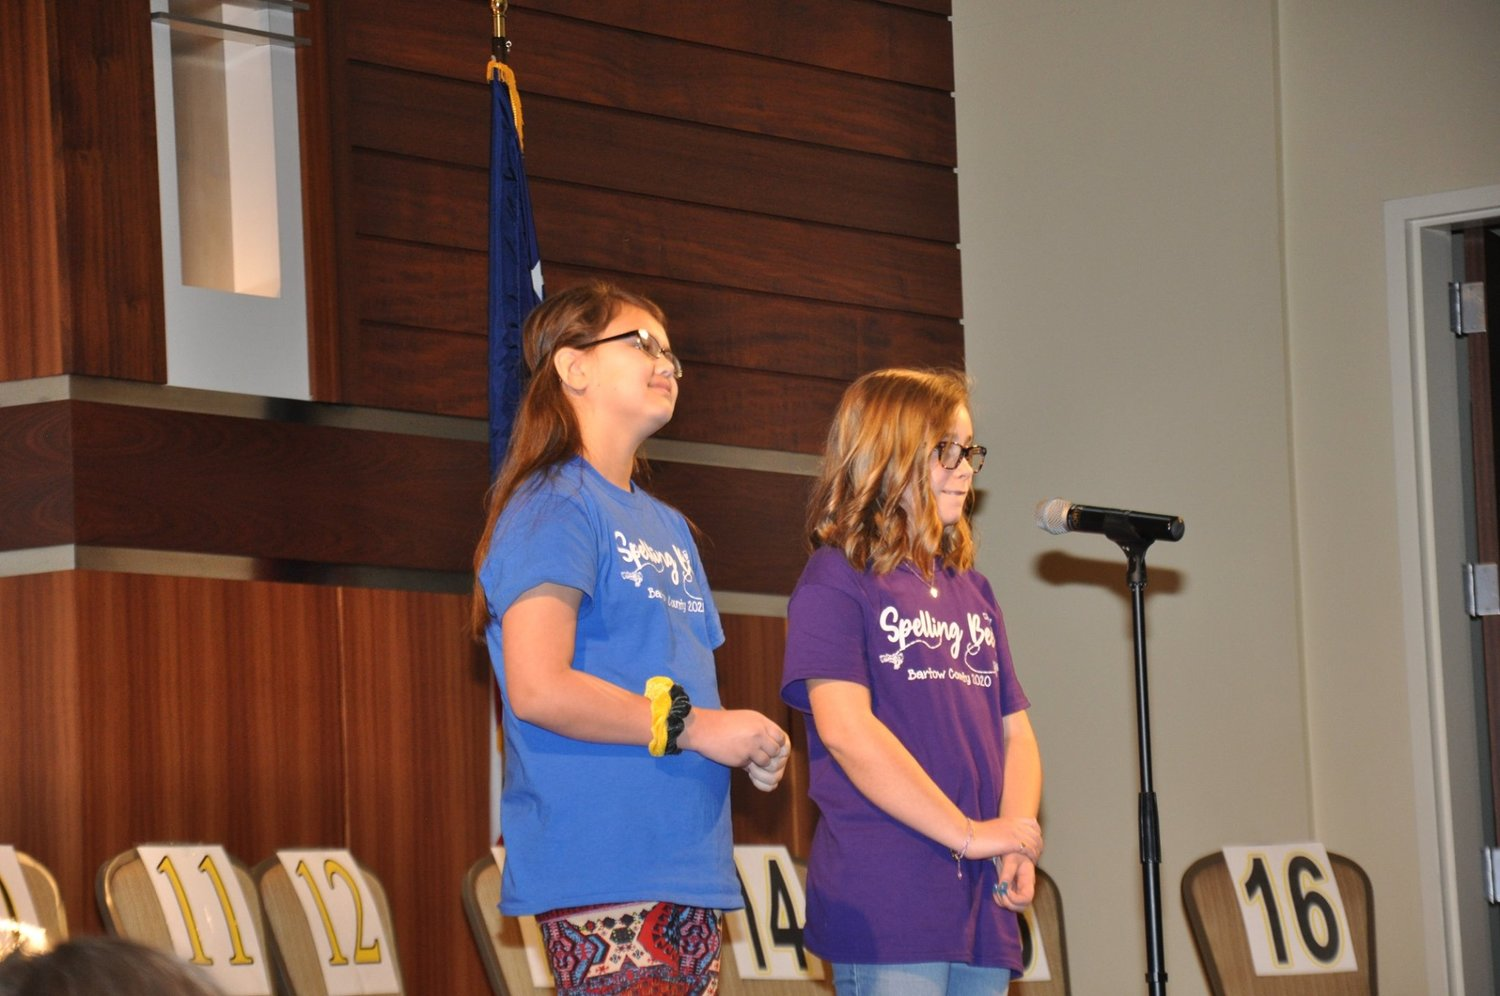 Fifth-graders Leilah Bedford, left, from Kingston Elementary and Mary Harris Gambill from Mission Road Elementary compete for the title of Bartow County spelling champion.